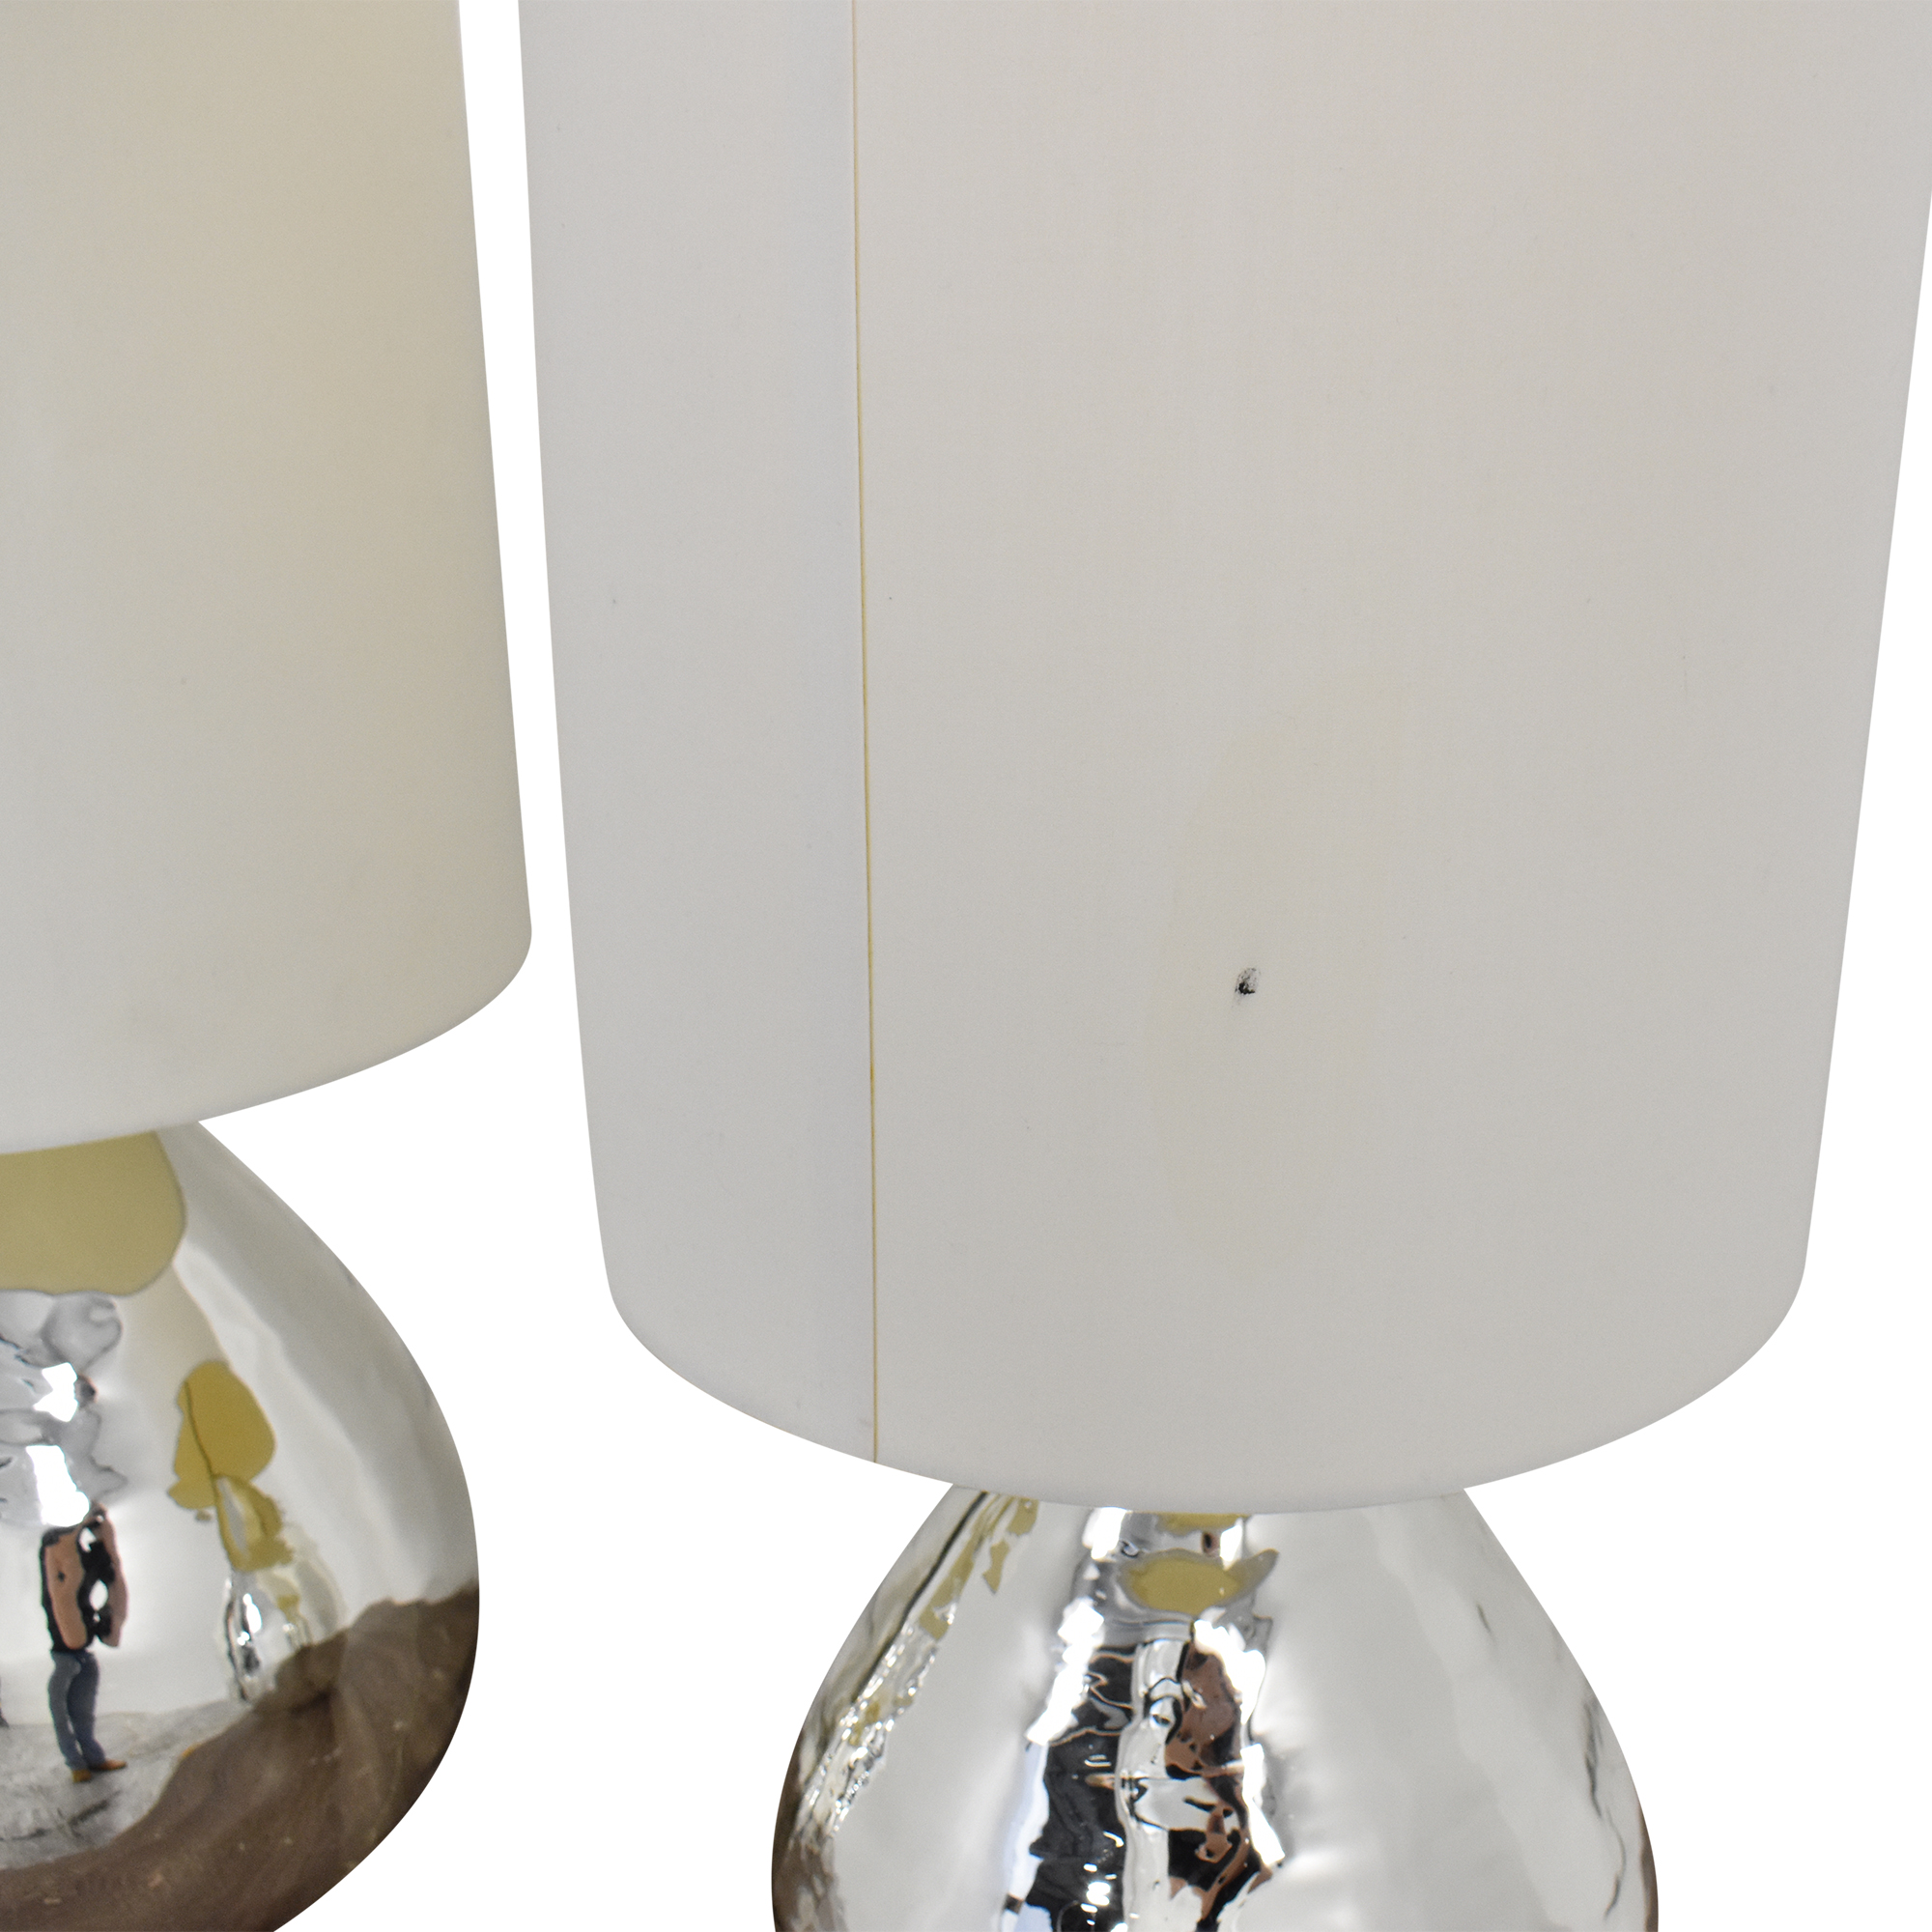 Pottery Barn Pottery Barn Mercury Glass Style Table Lamps silver & white